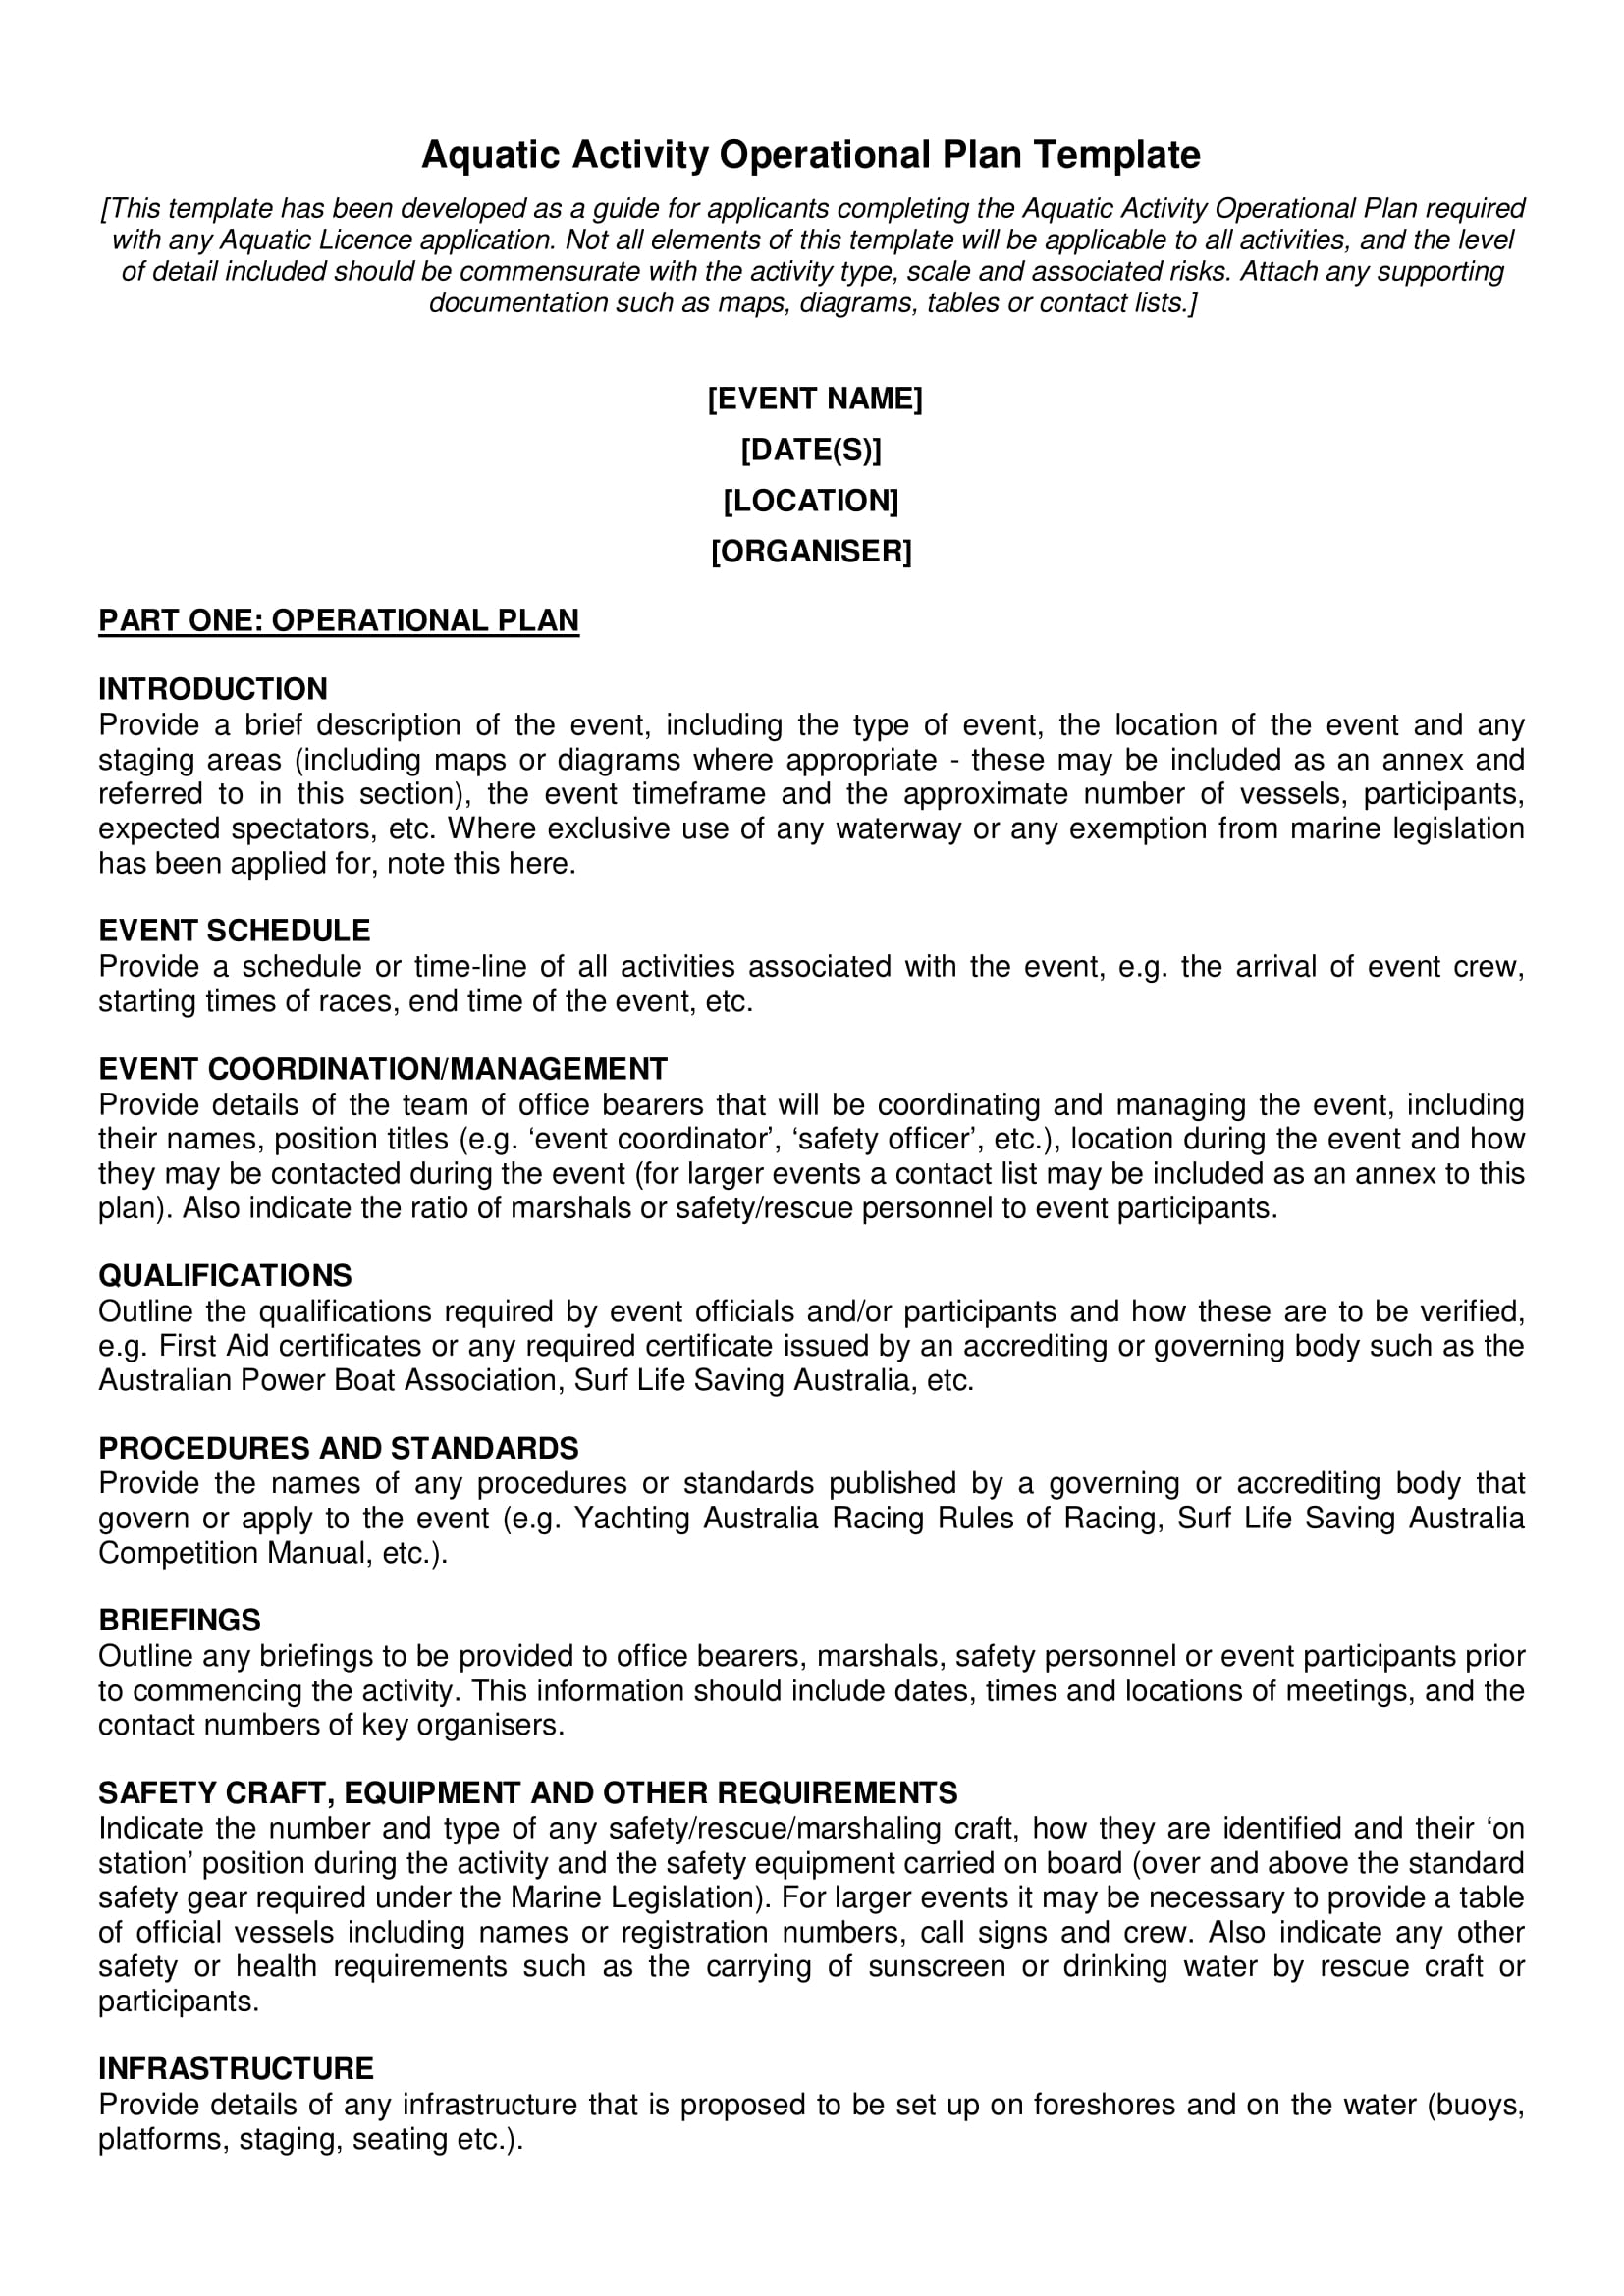 aquatic activity or event operational plan template example 1